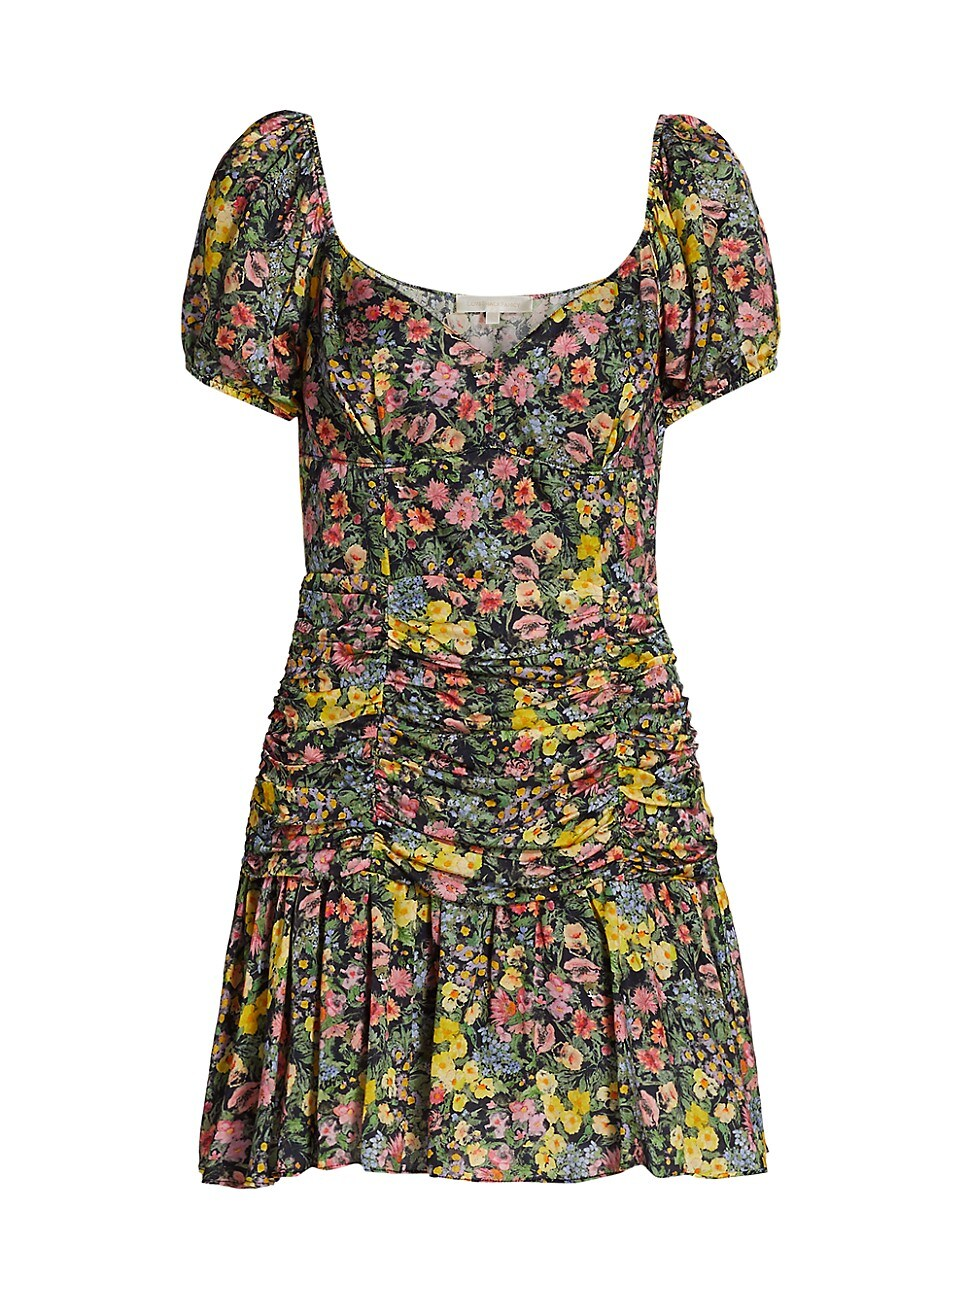 Loveshackfancy WOMEN'S AMBRETTE DITSY FLORAL MINI DRESS